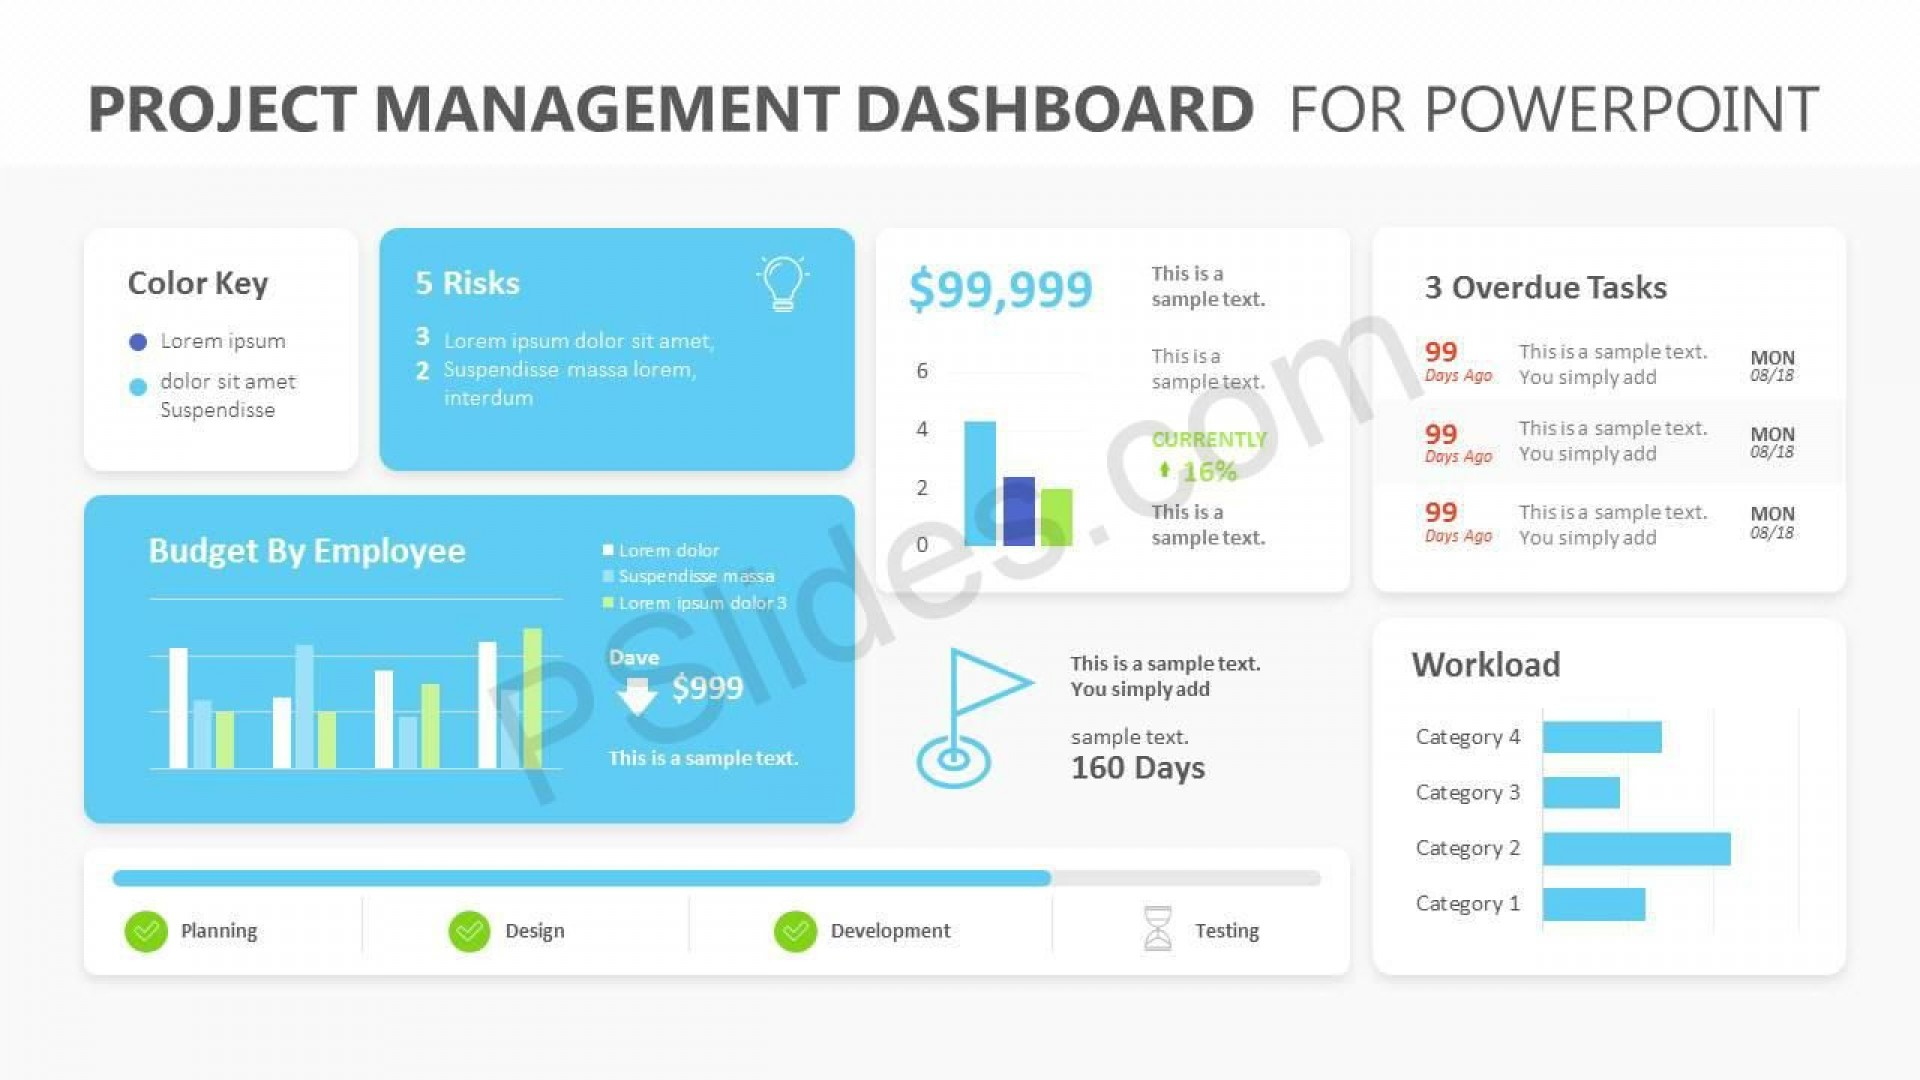 007 Awesome Project Management Powerpoint Template Free Download Idea  Sqert Dashboard1920